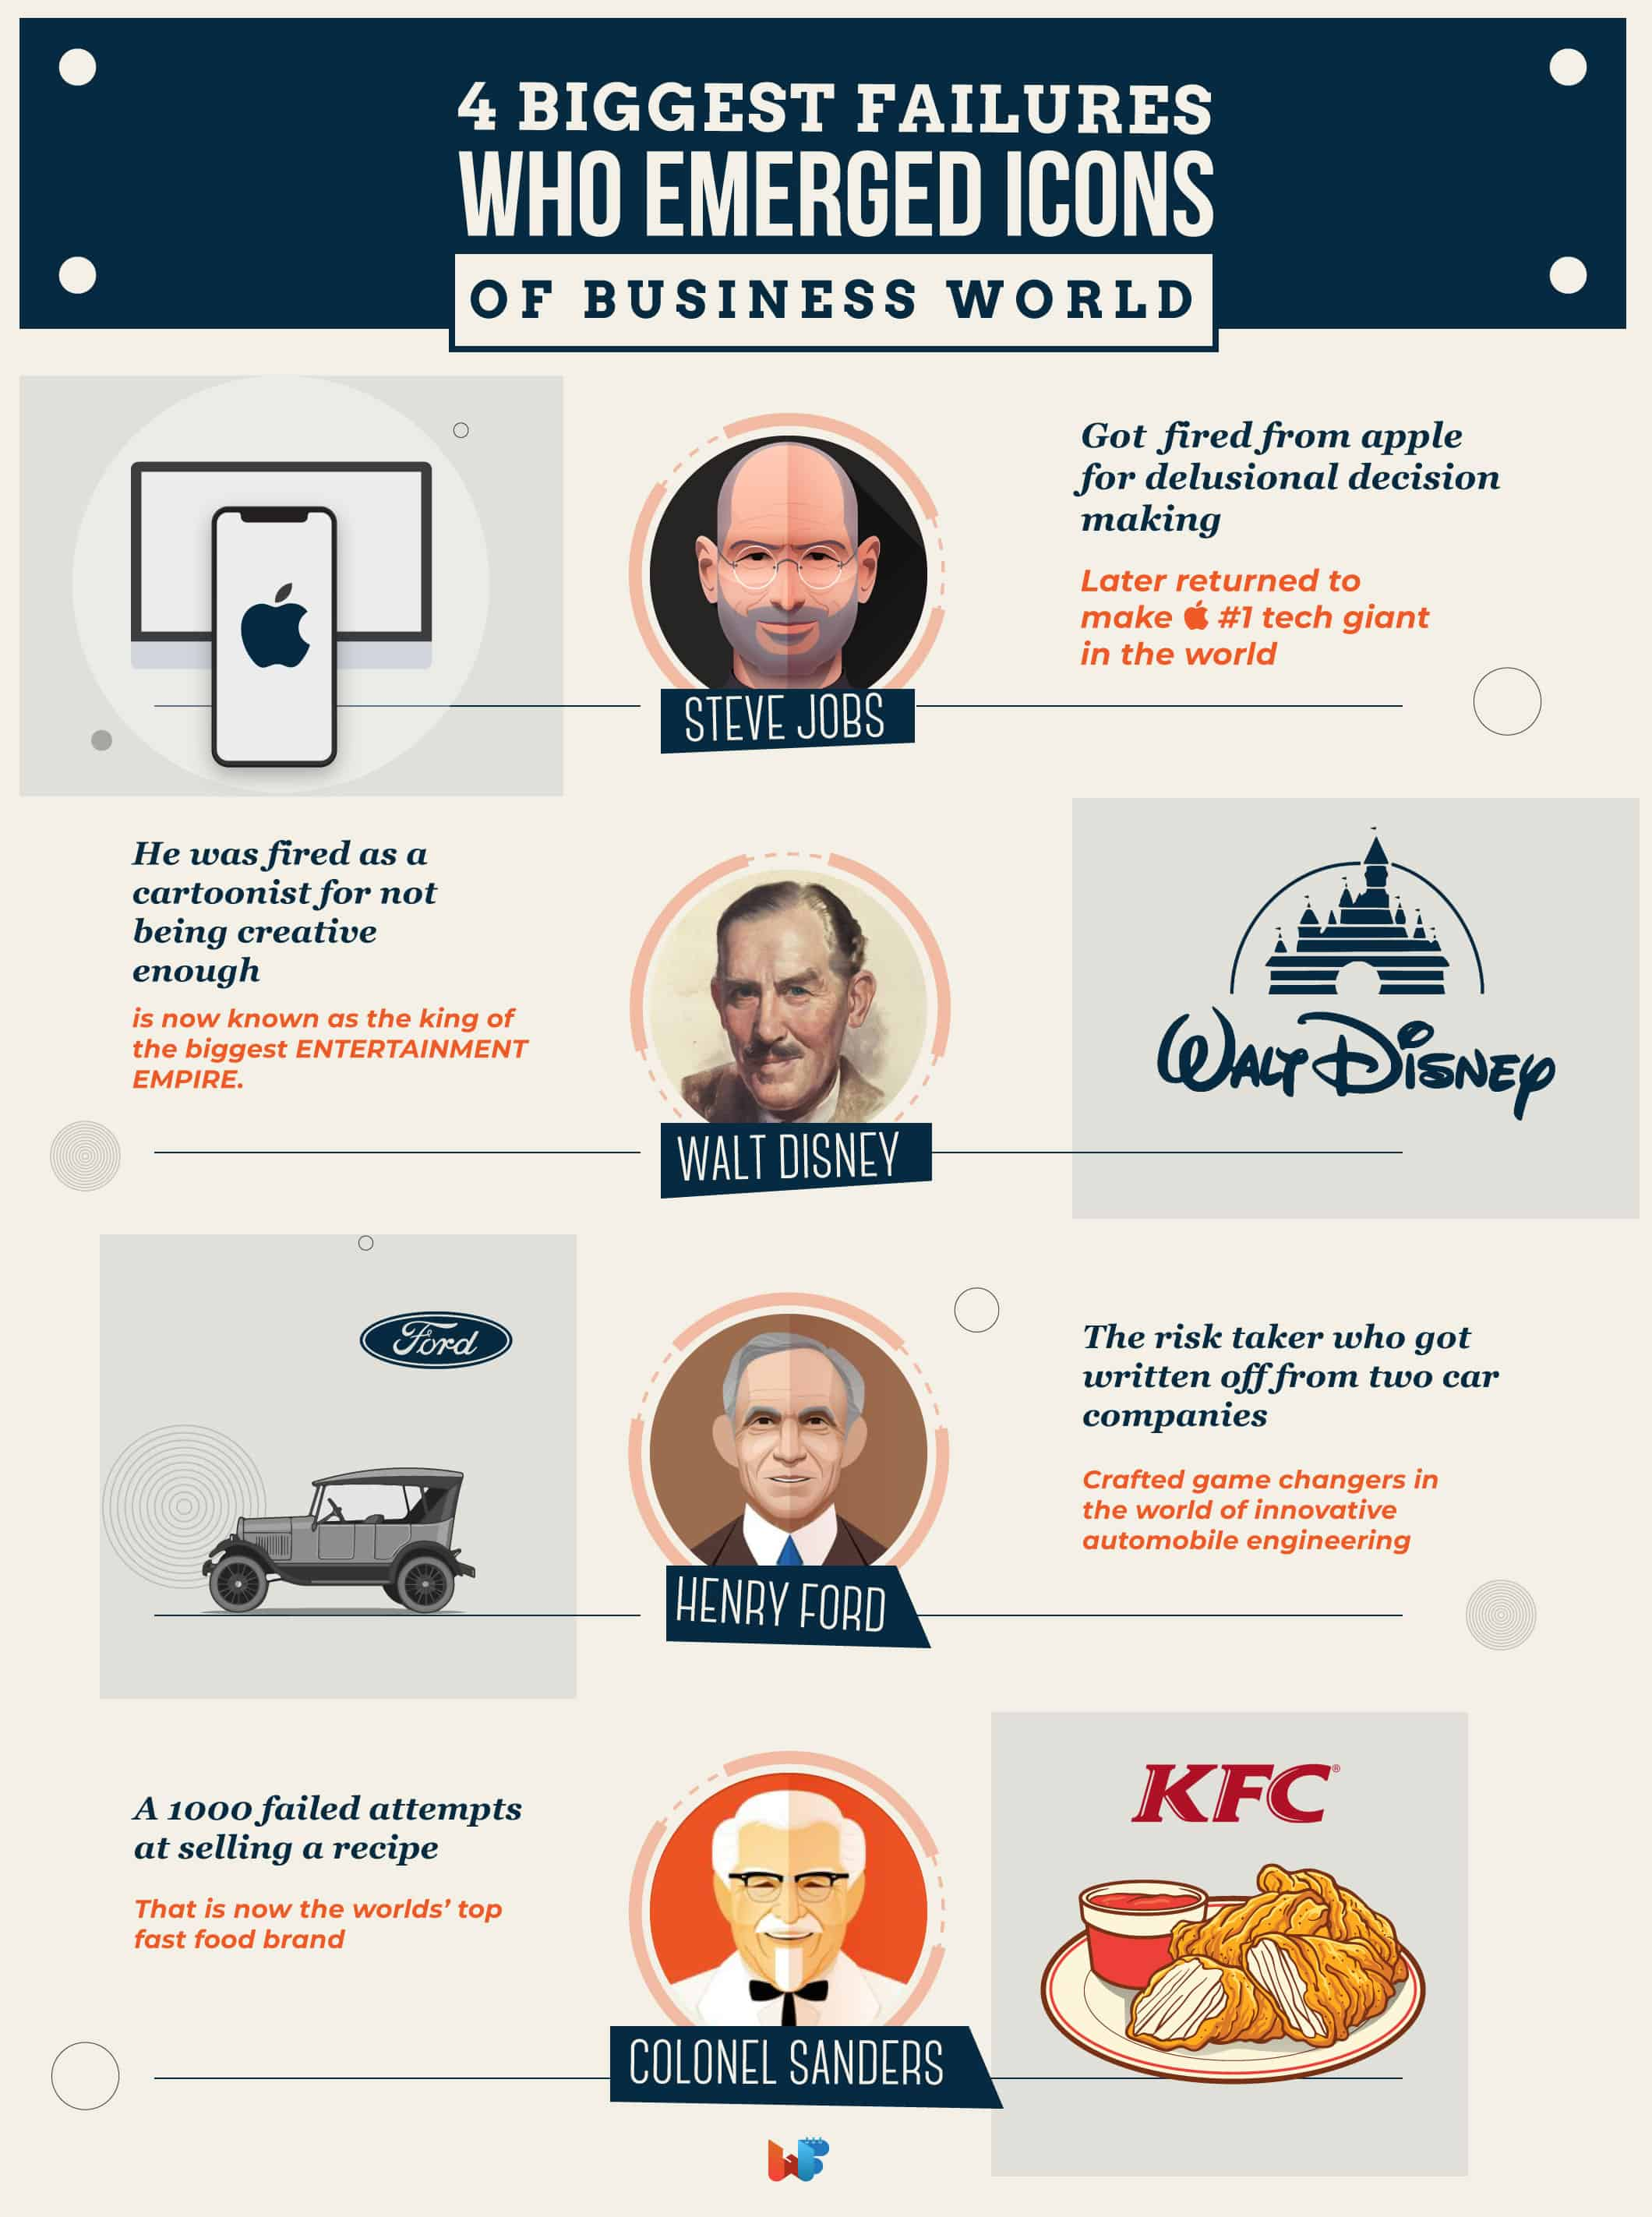 BIGGEST-FAILURES-WHO-EMERGED-ICONS-OF-BUSINESS-WORLD